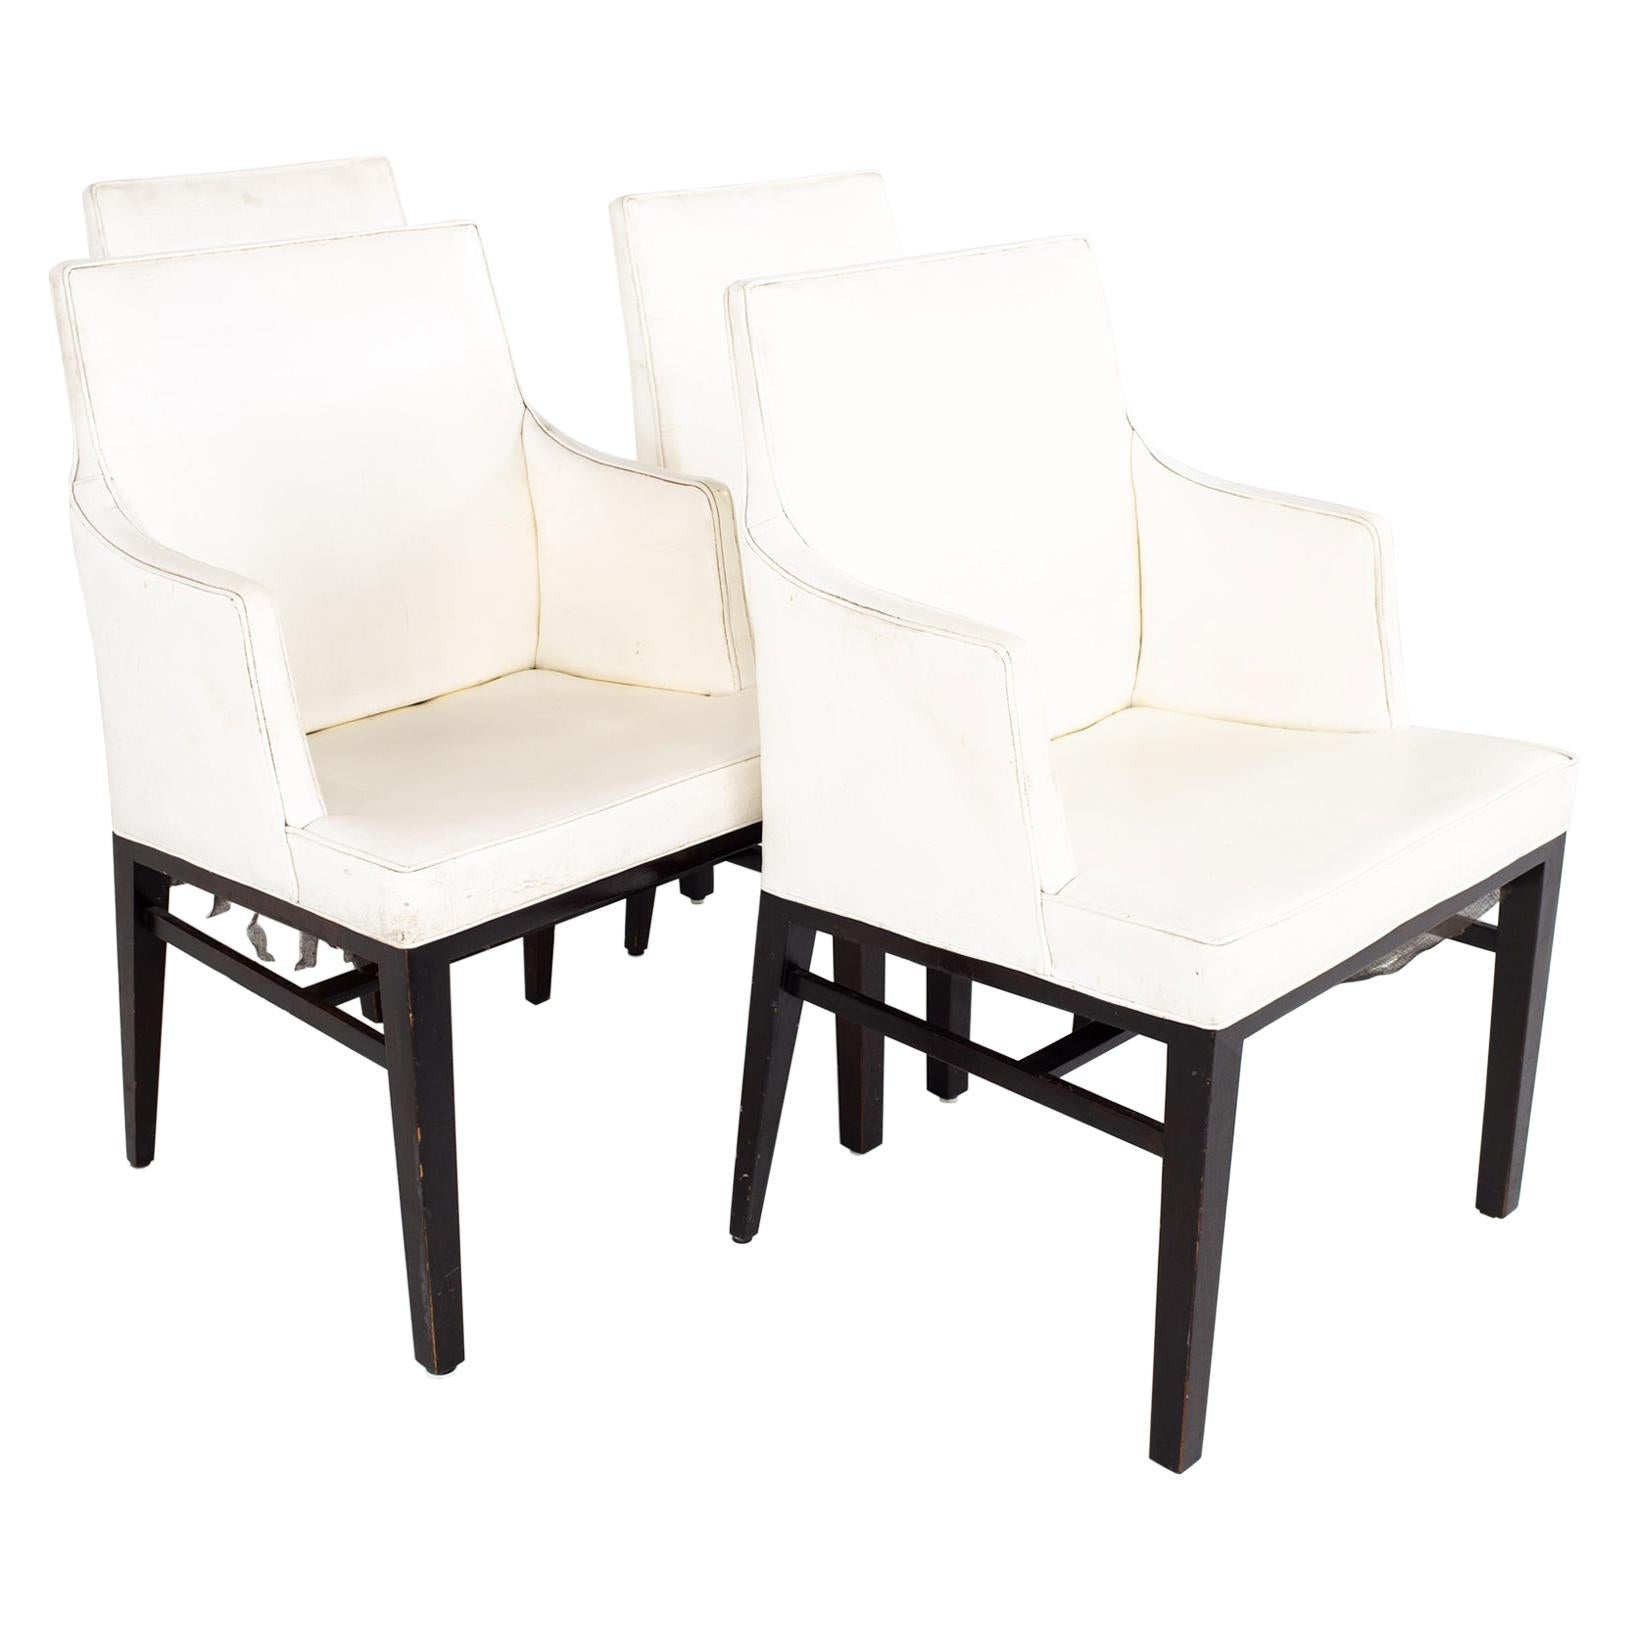 Edward Wormley for Dunbar Mid Century Dining Chairs, Set of 4